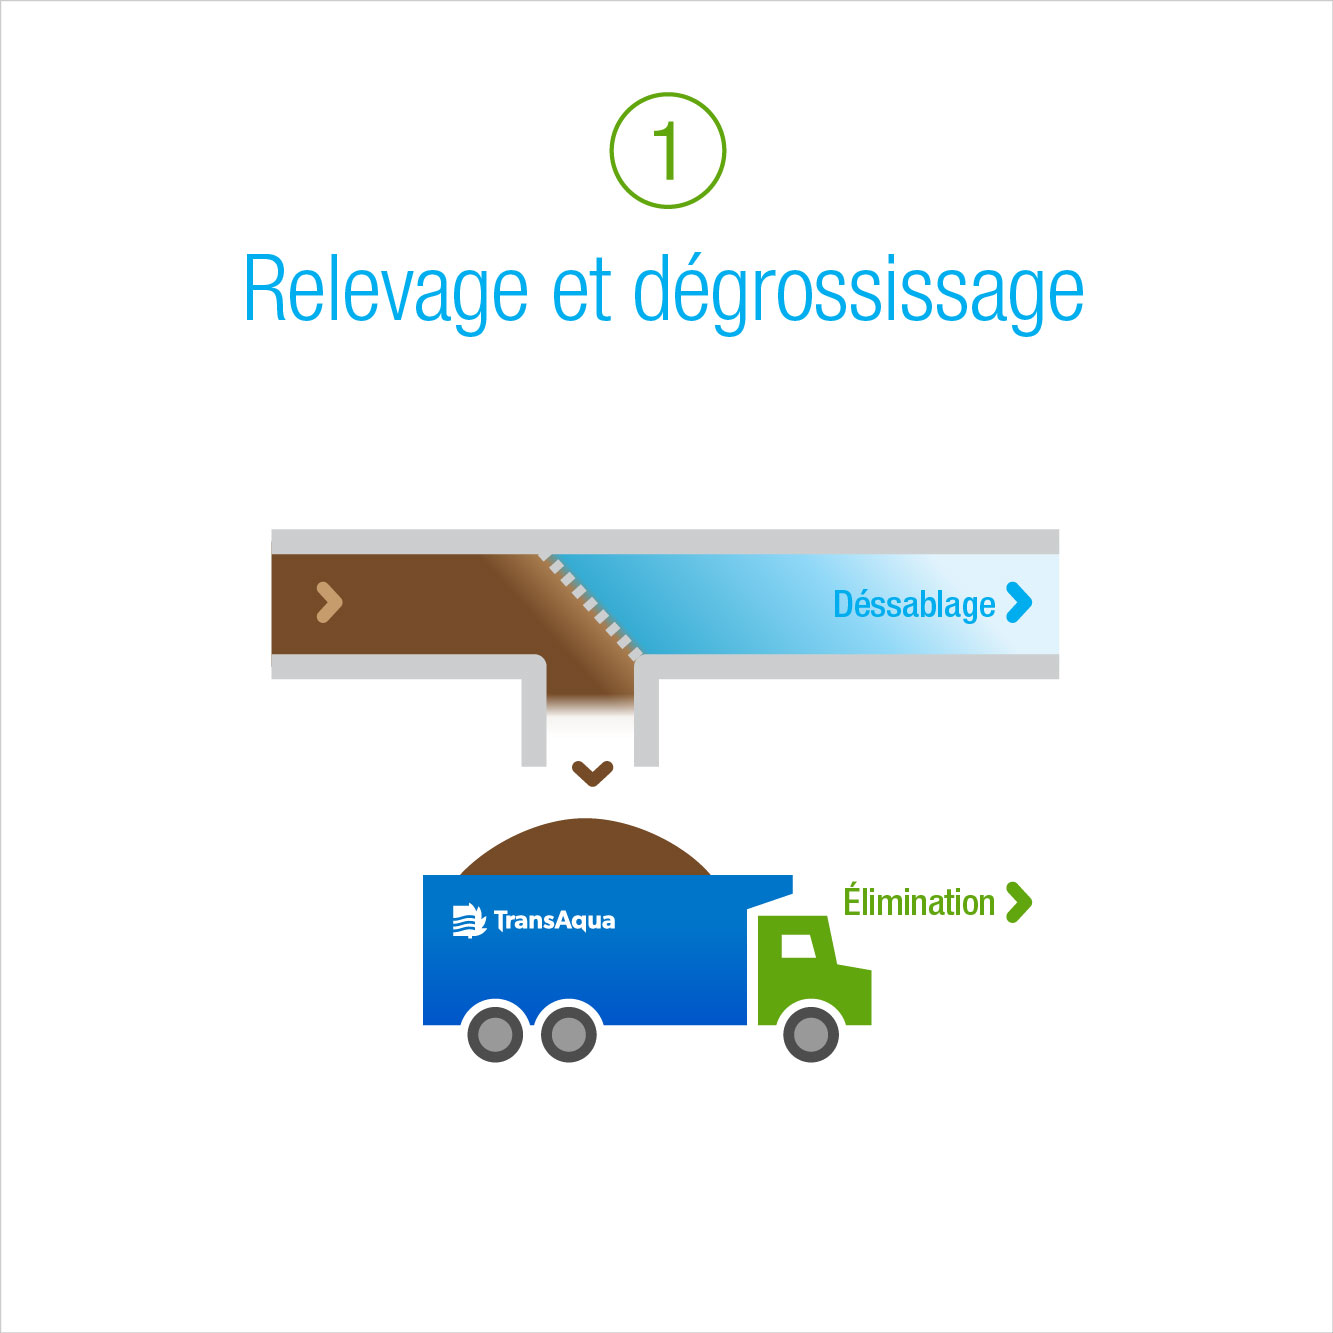 1: Relevage et degrossissage